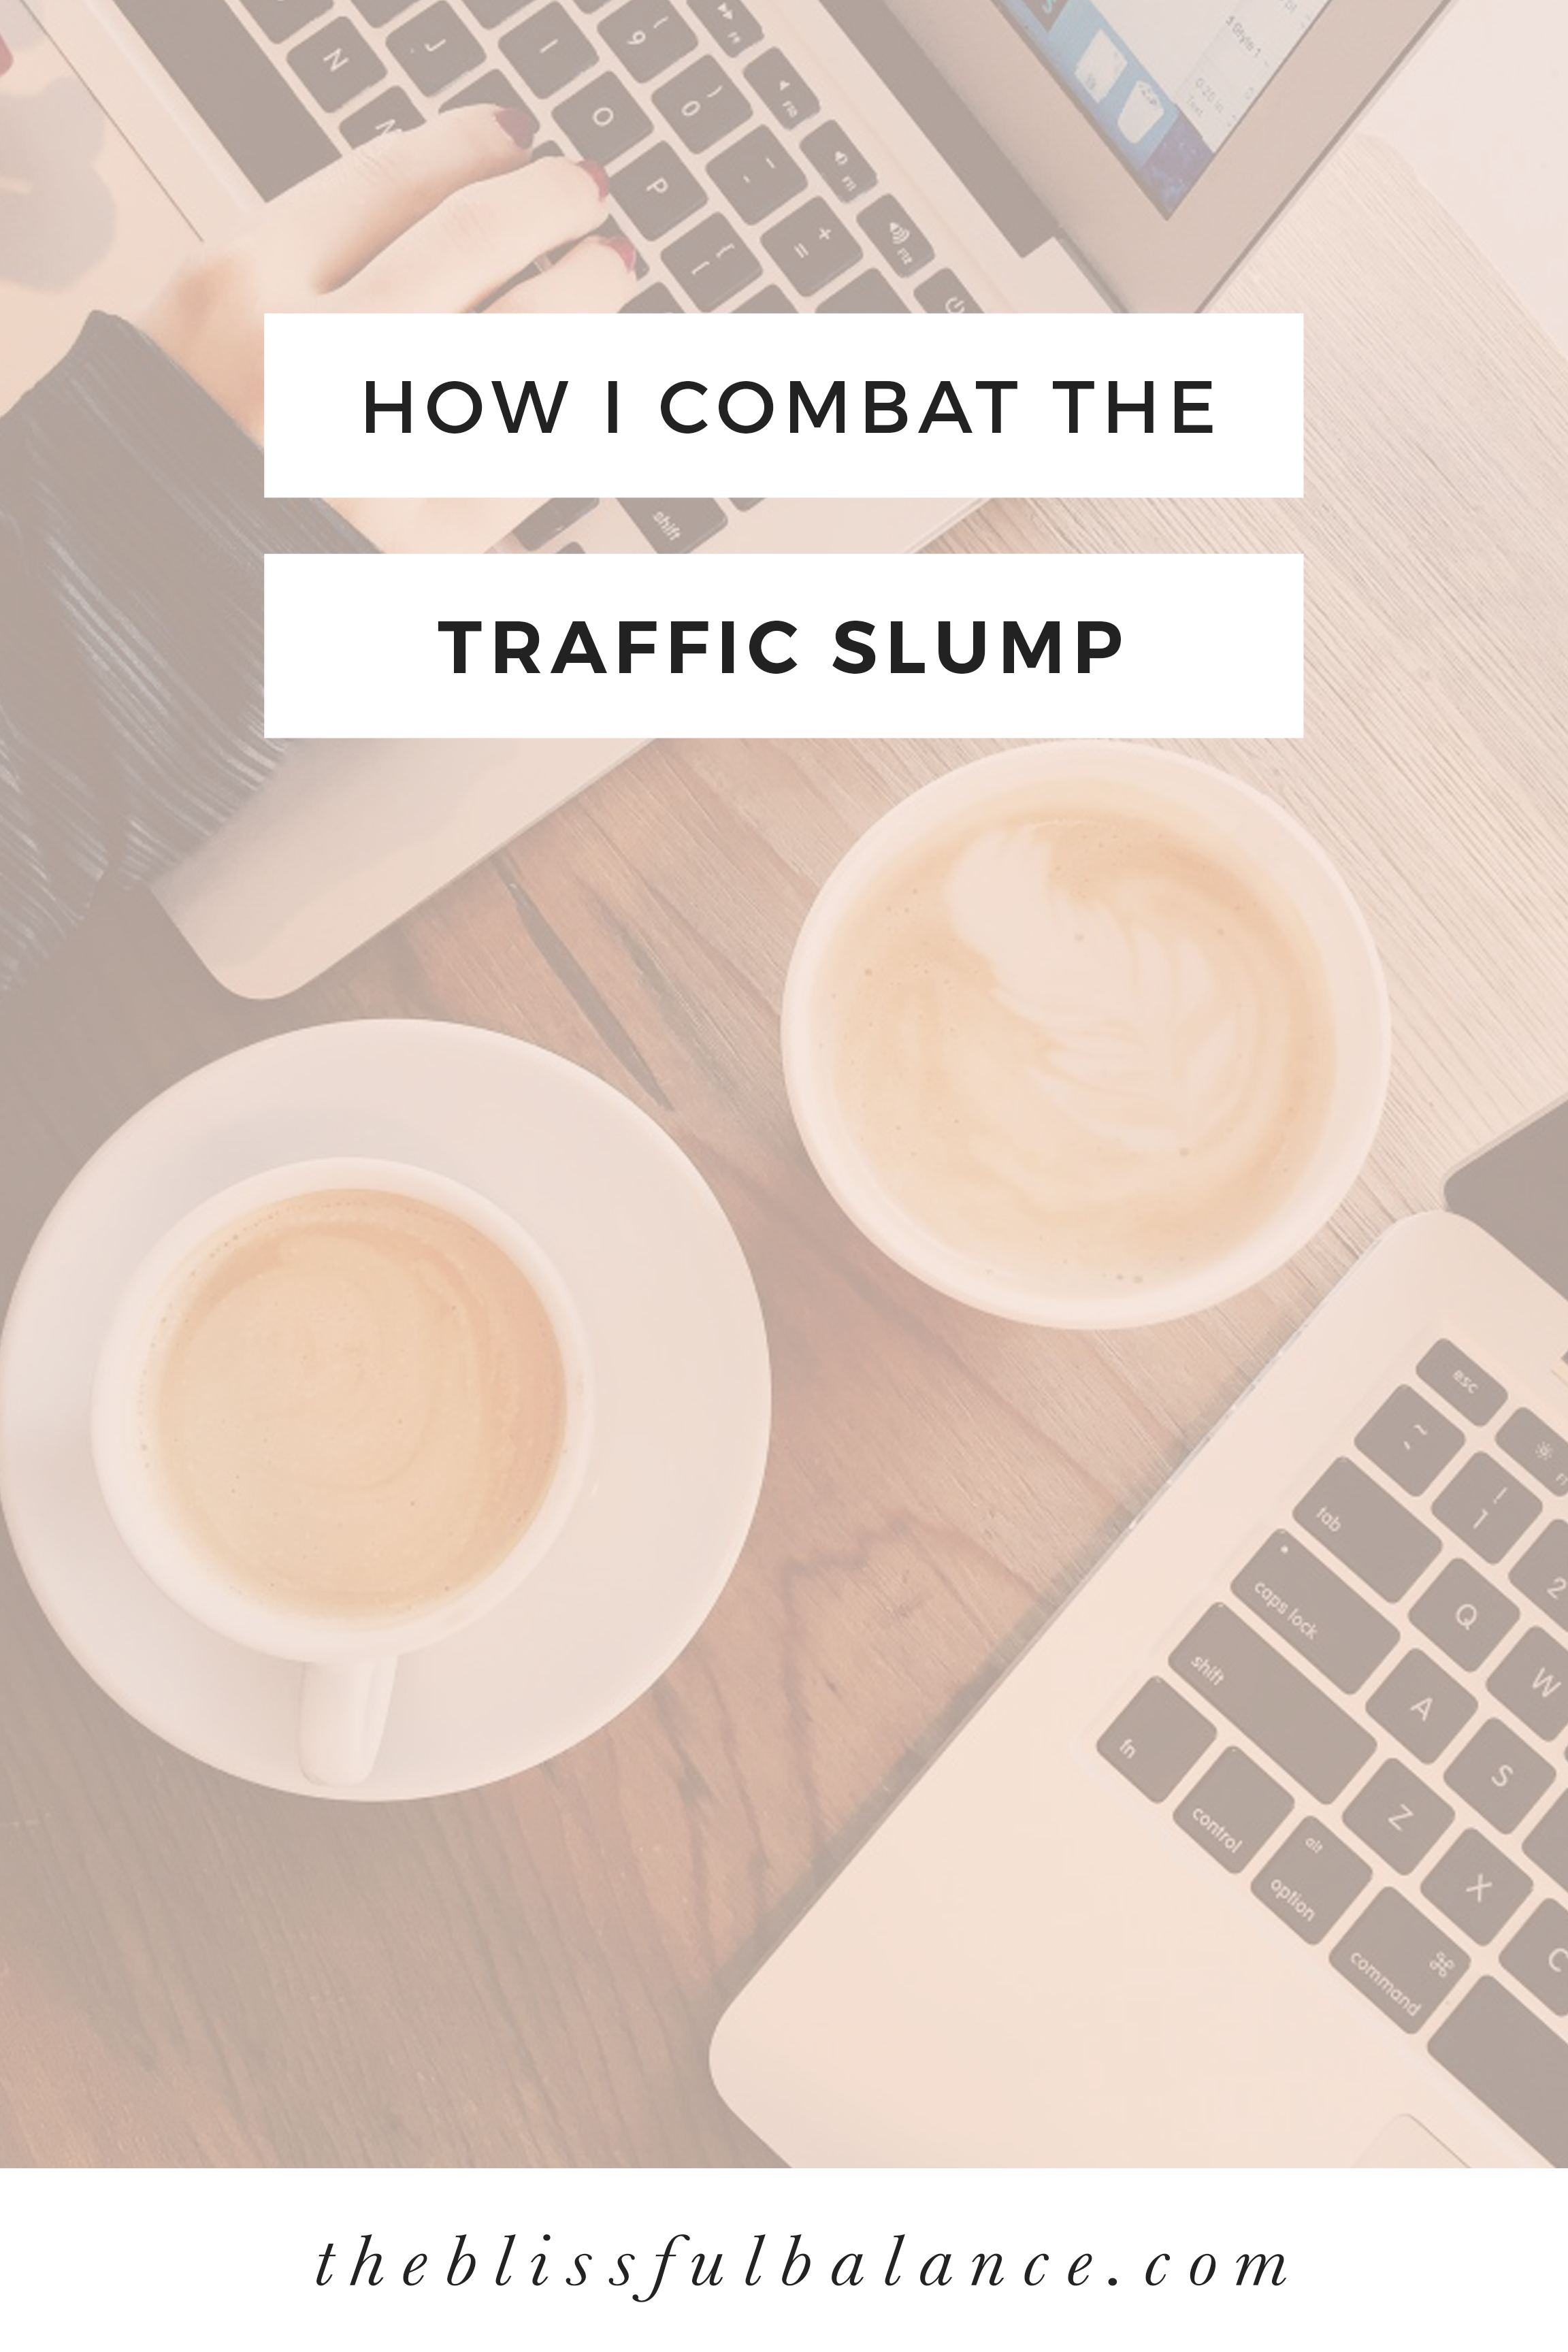 Dealing with low traffic as a blogger is frustrating. Here is how I get through the traffic slump, and grow despite it.